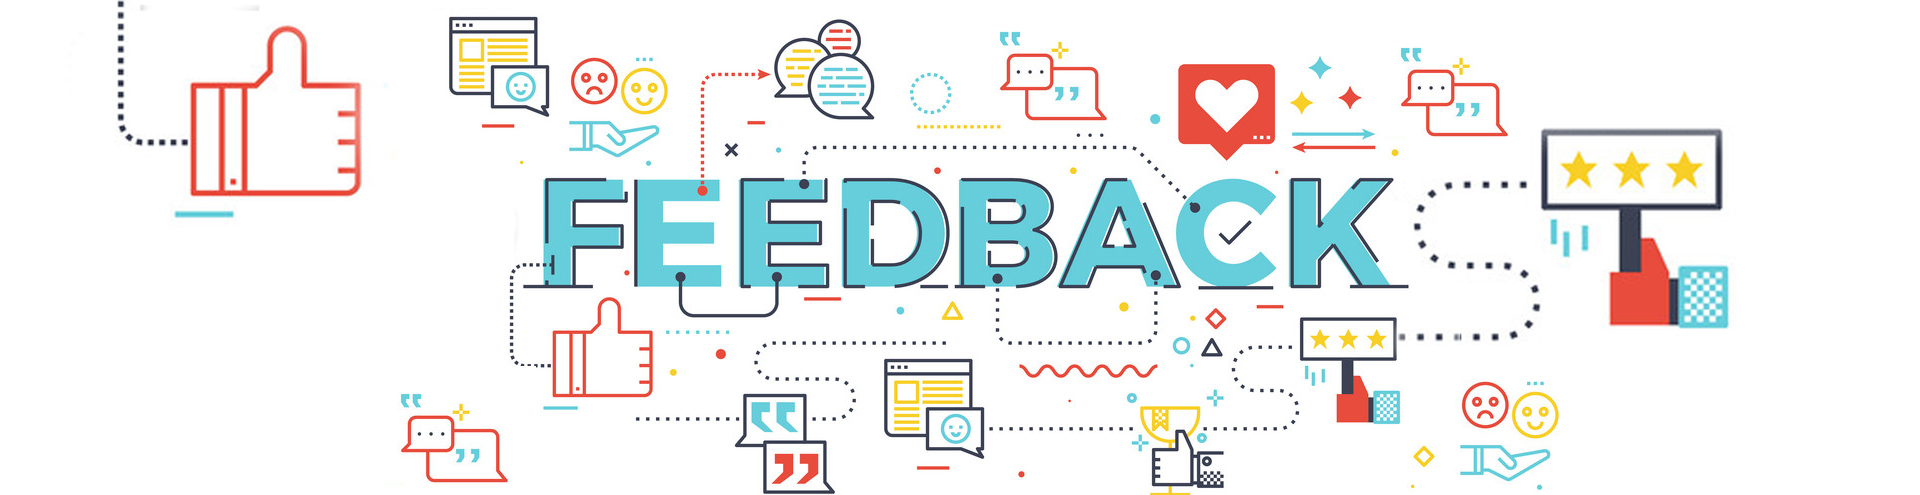 4 Tips For Fostering a Feedback Culture in Your Business